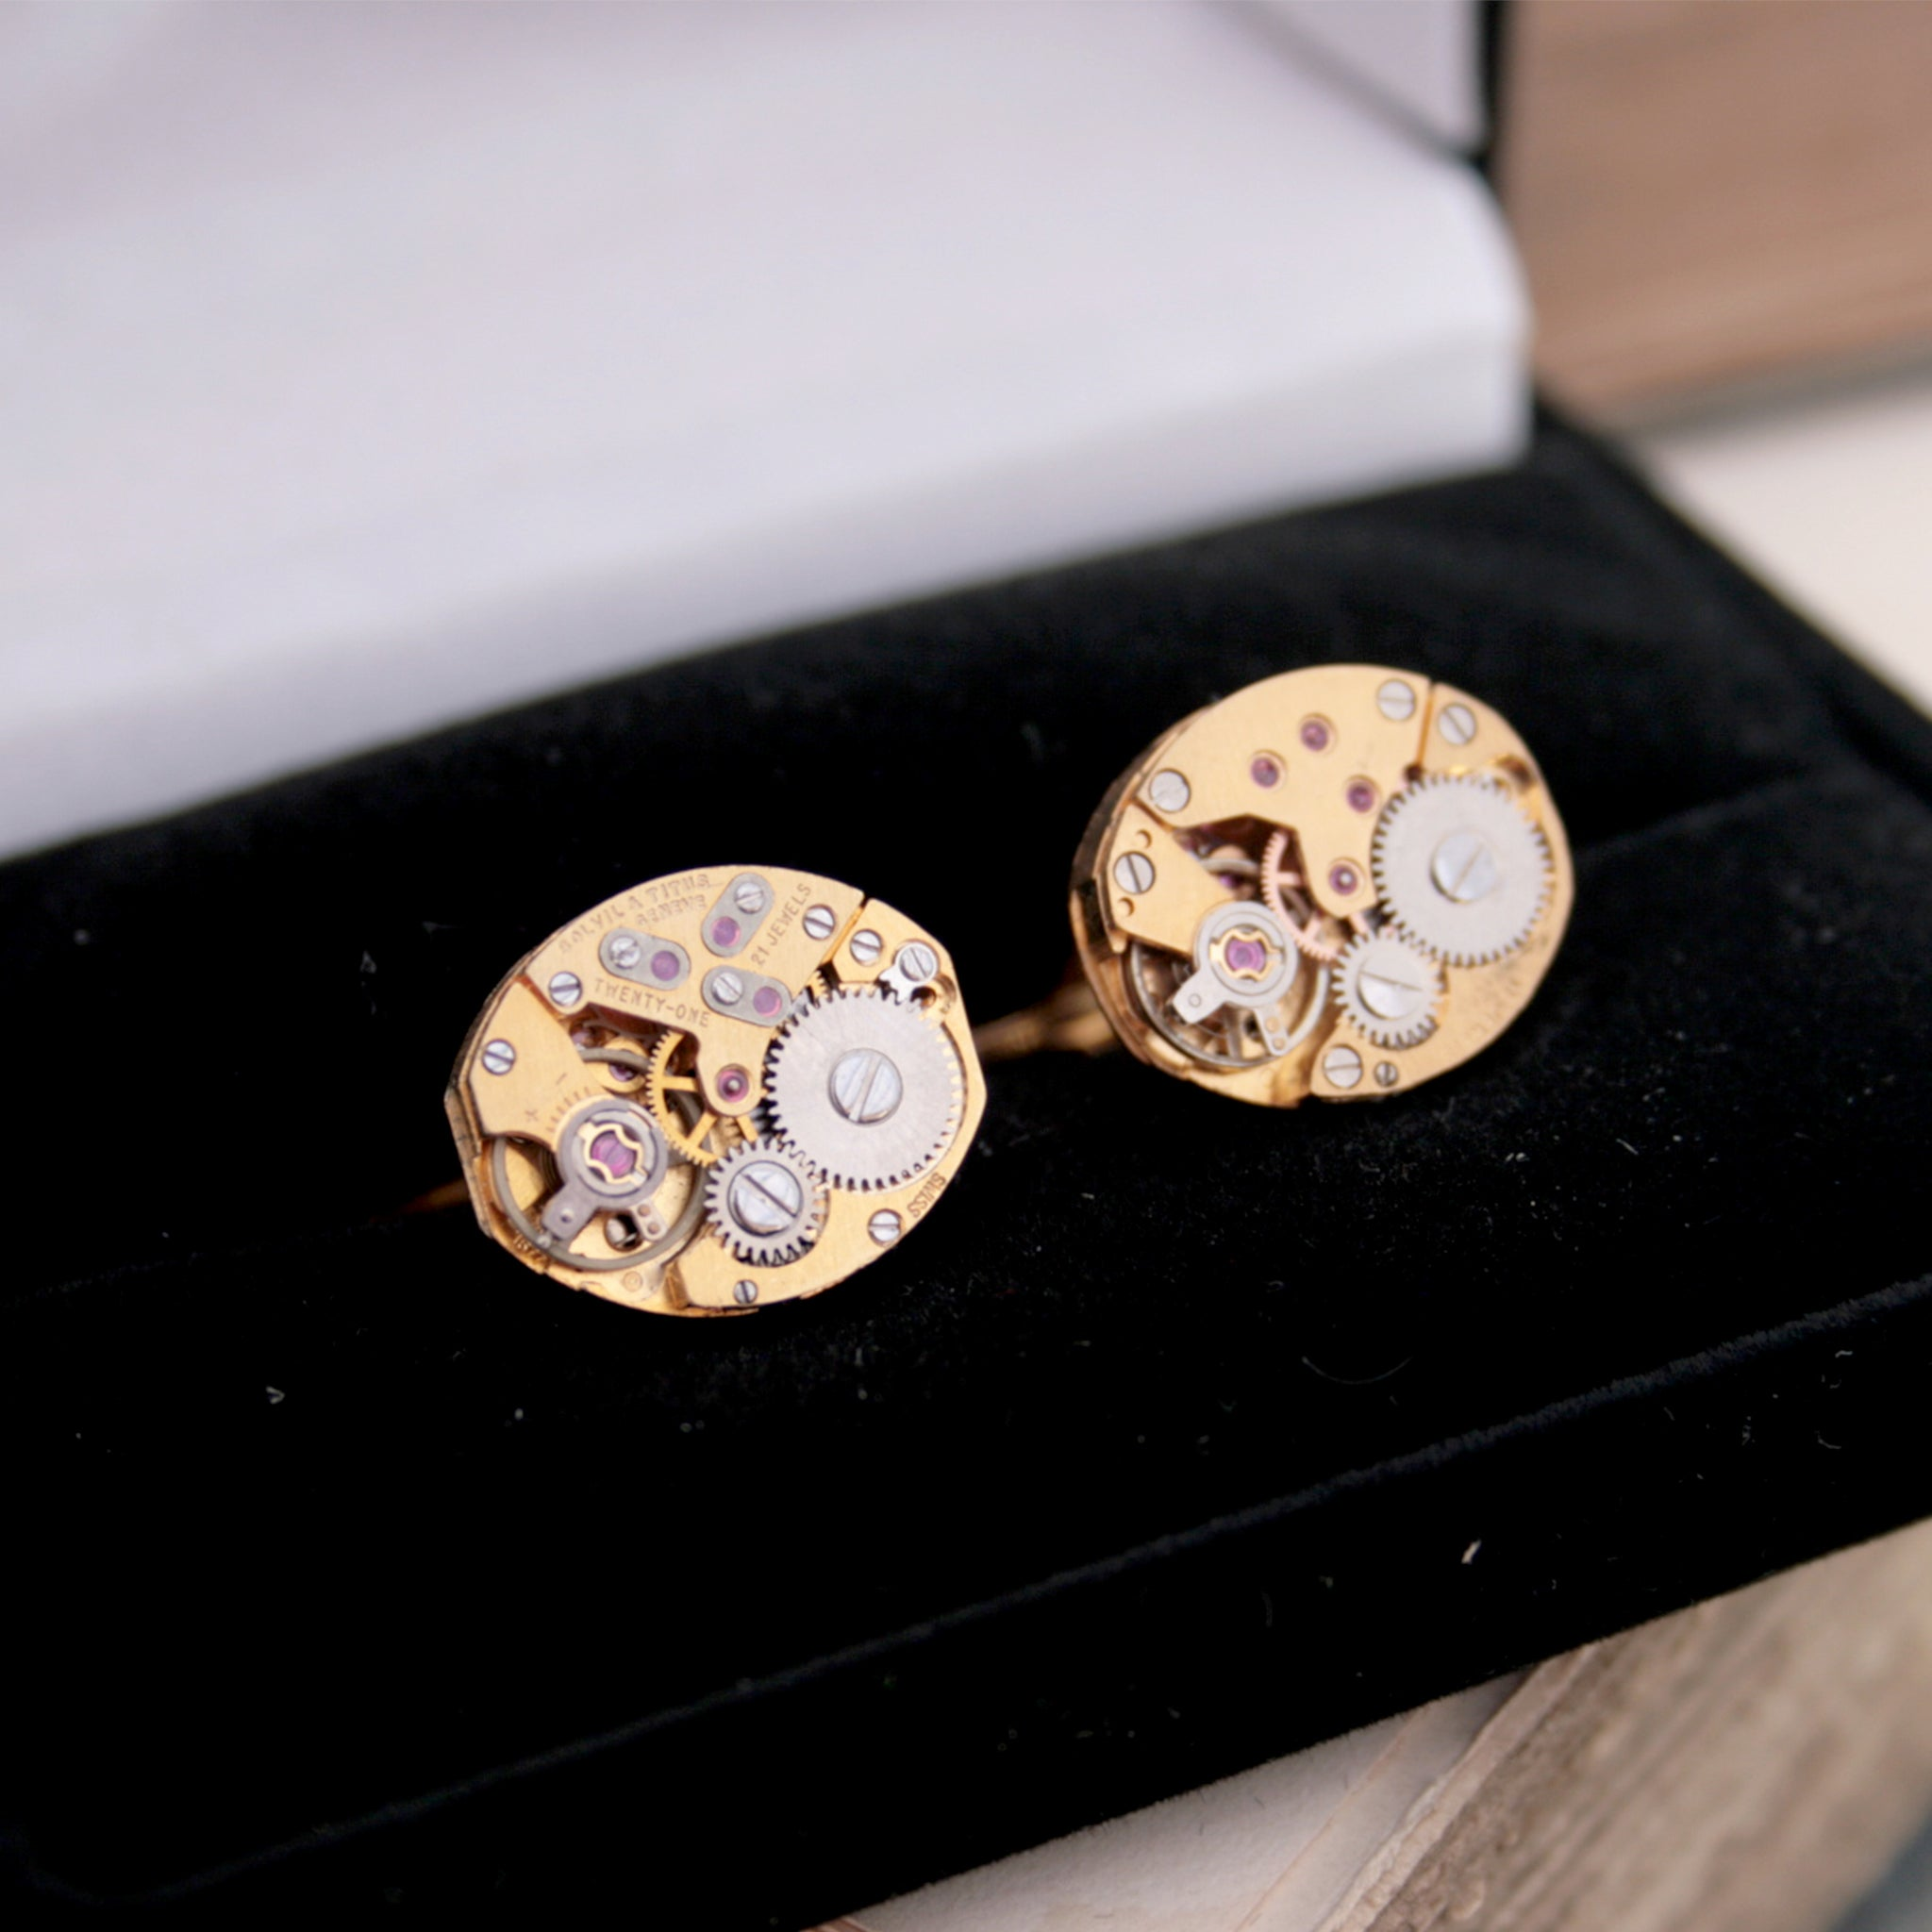 Gold Watch Cufflinks made of Rotary watch movements in a black velour box